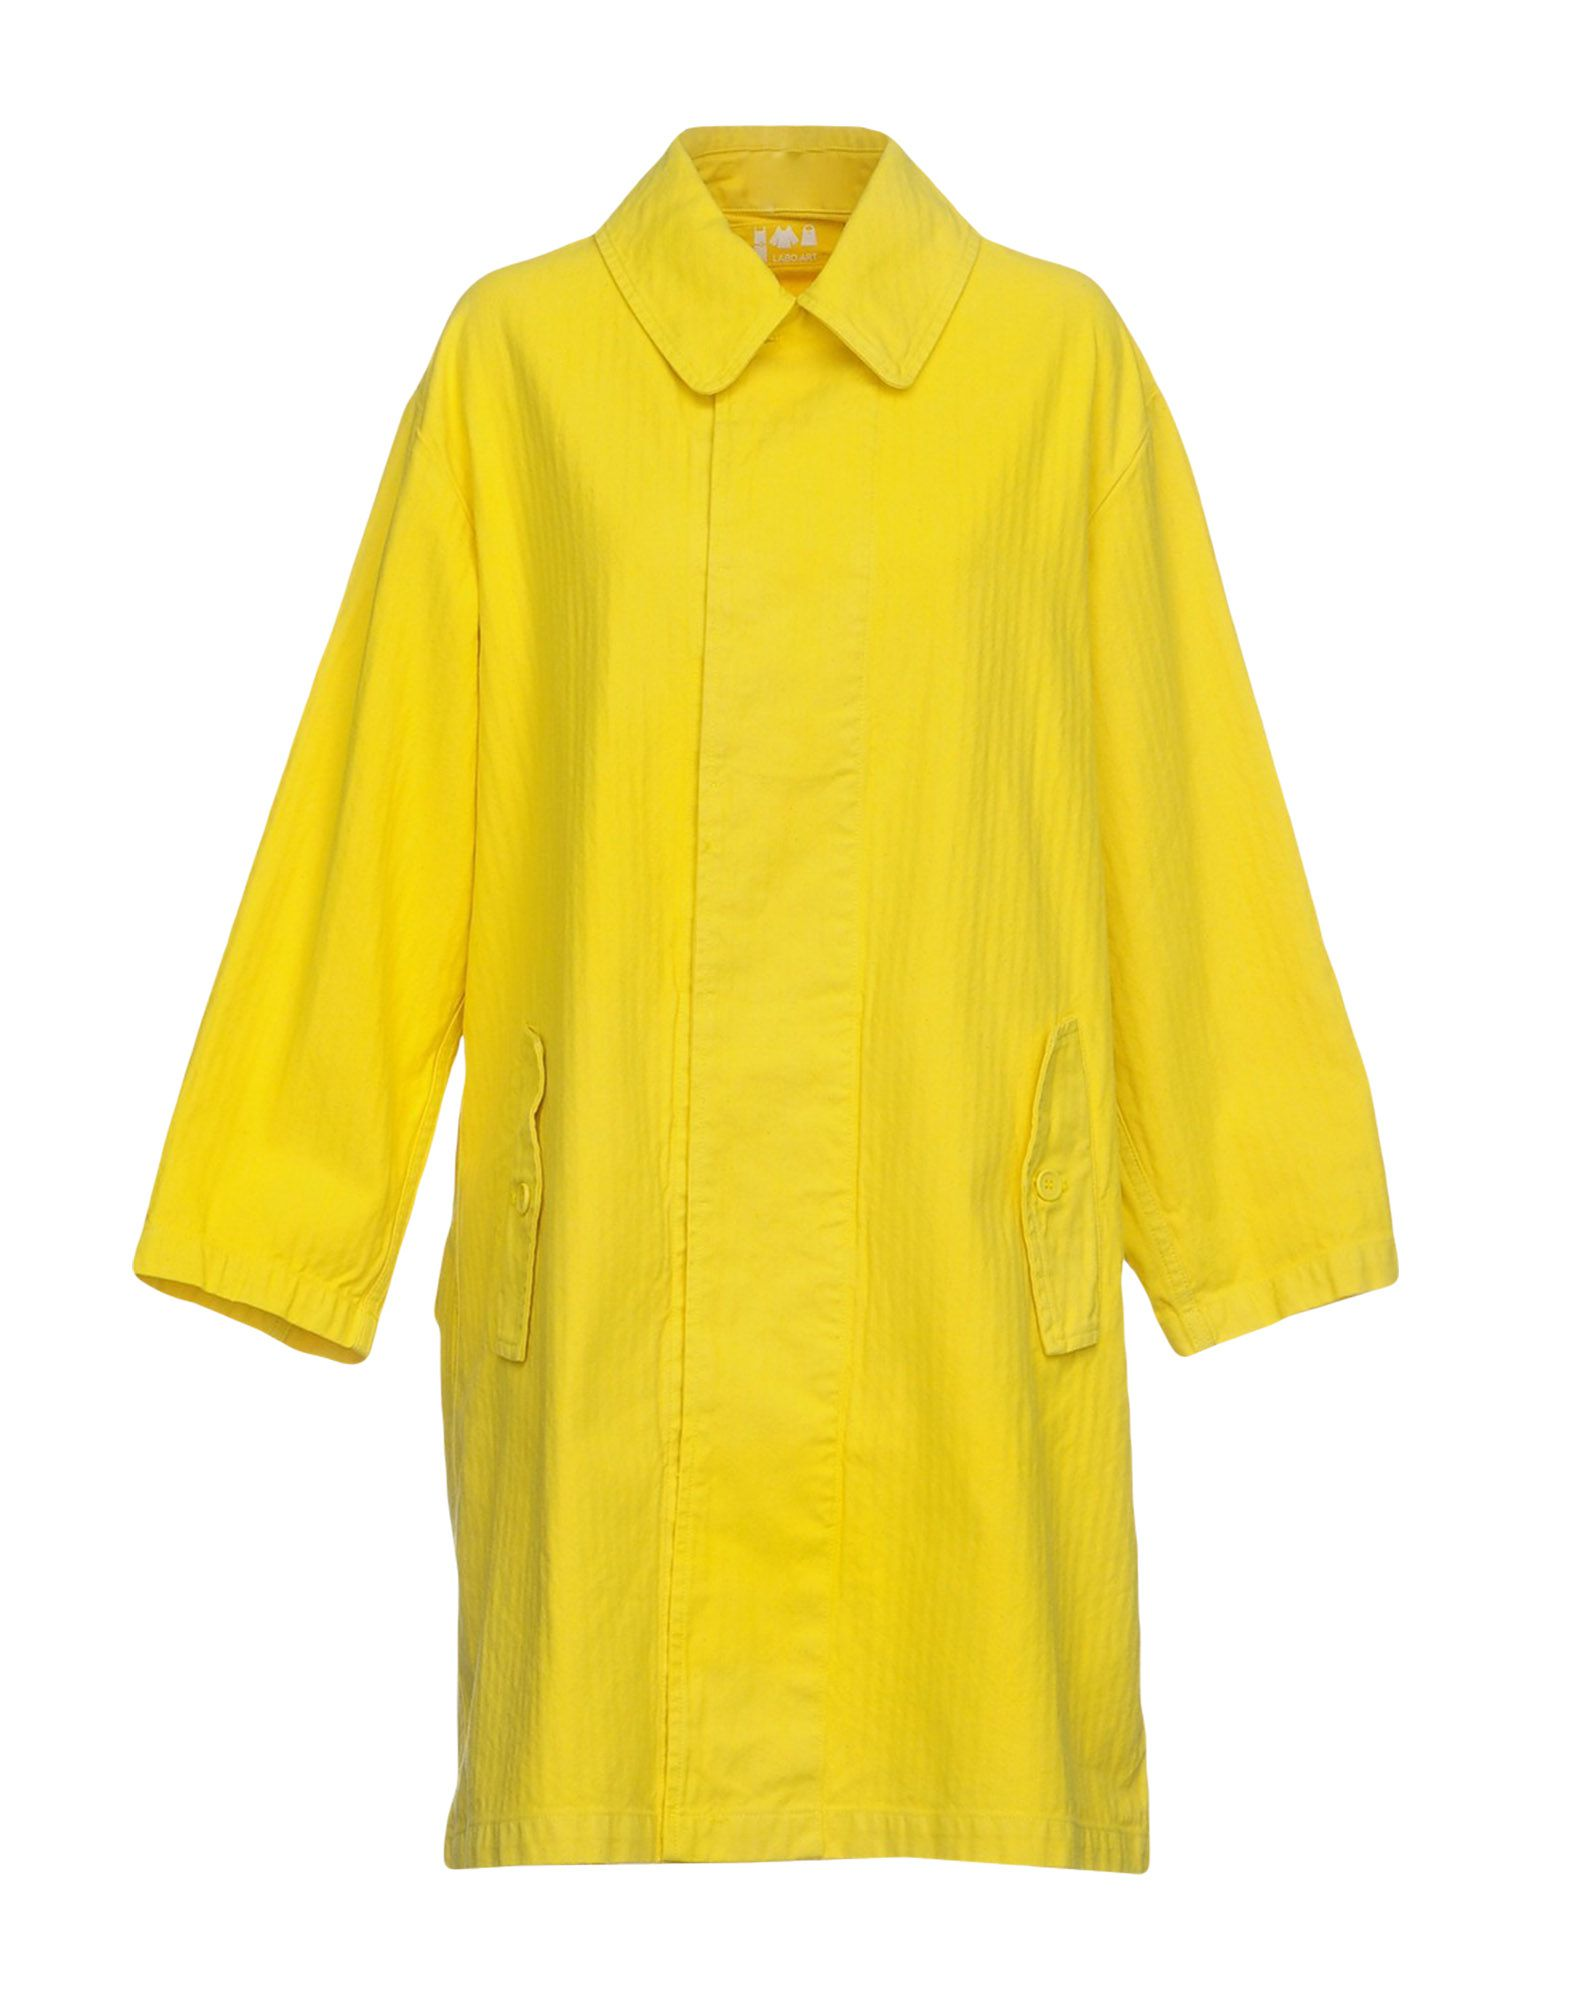 LABO ART Labo. Art Overcoats in Yellow